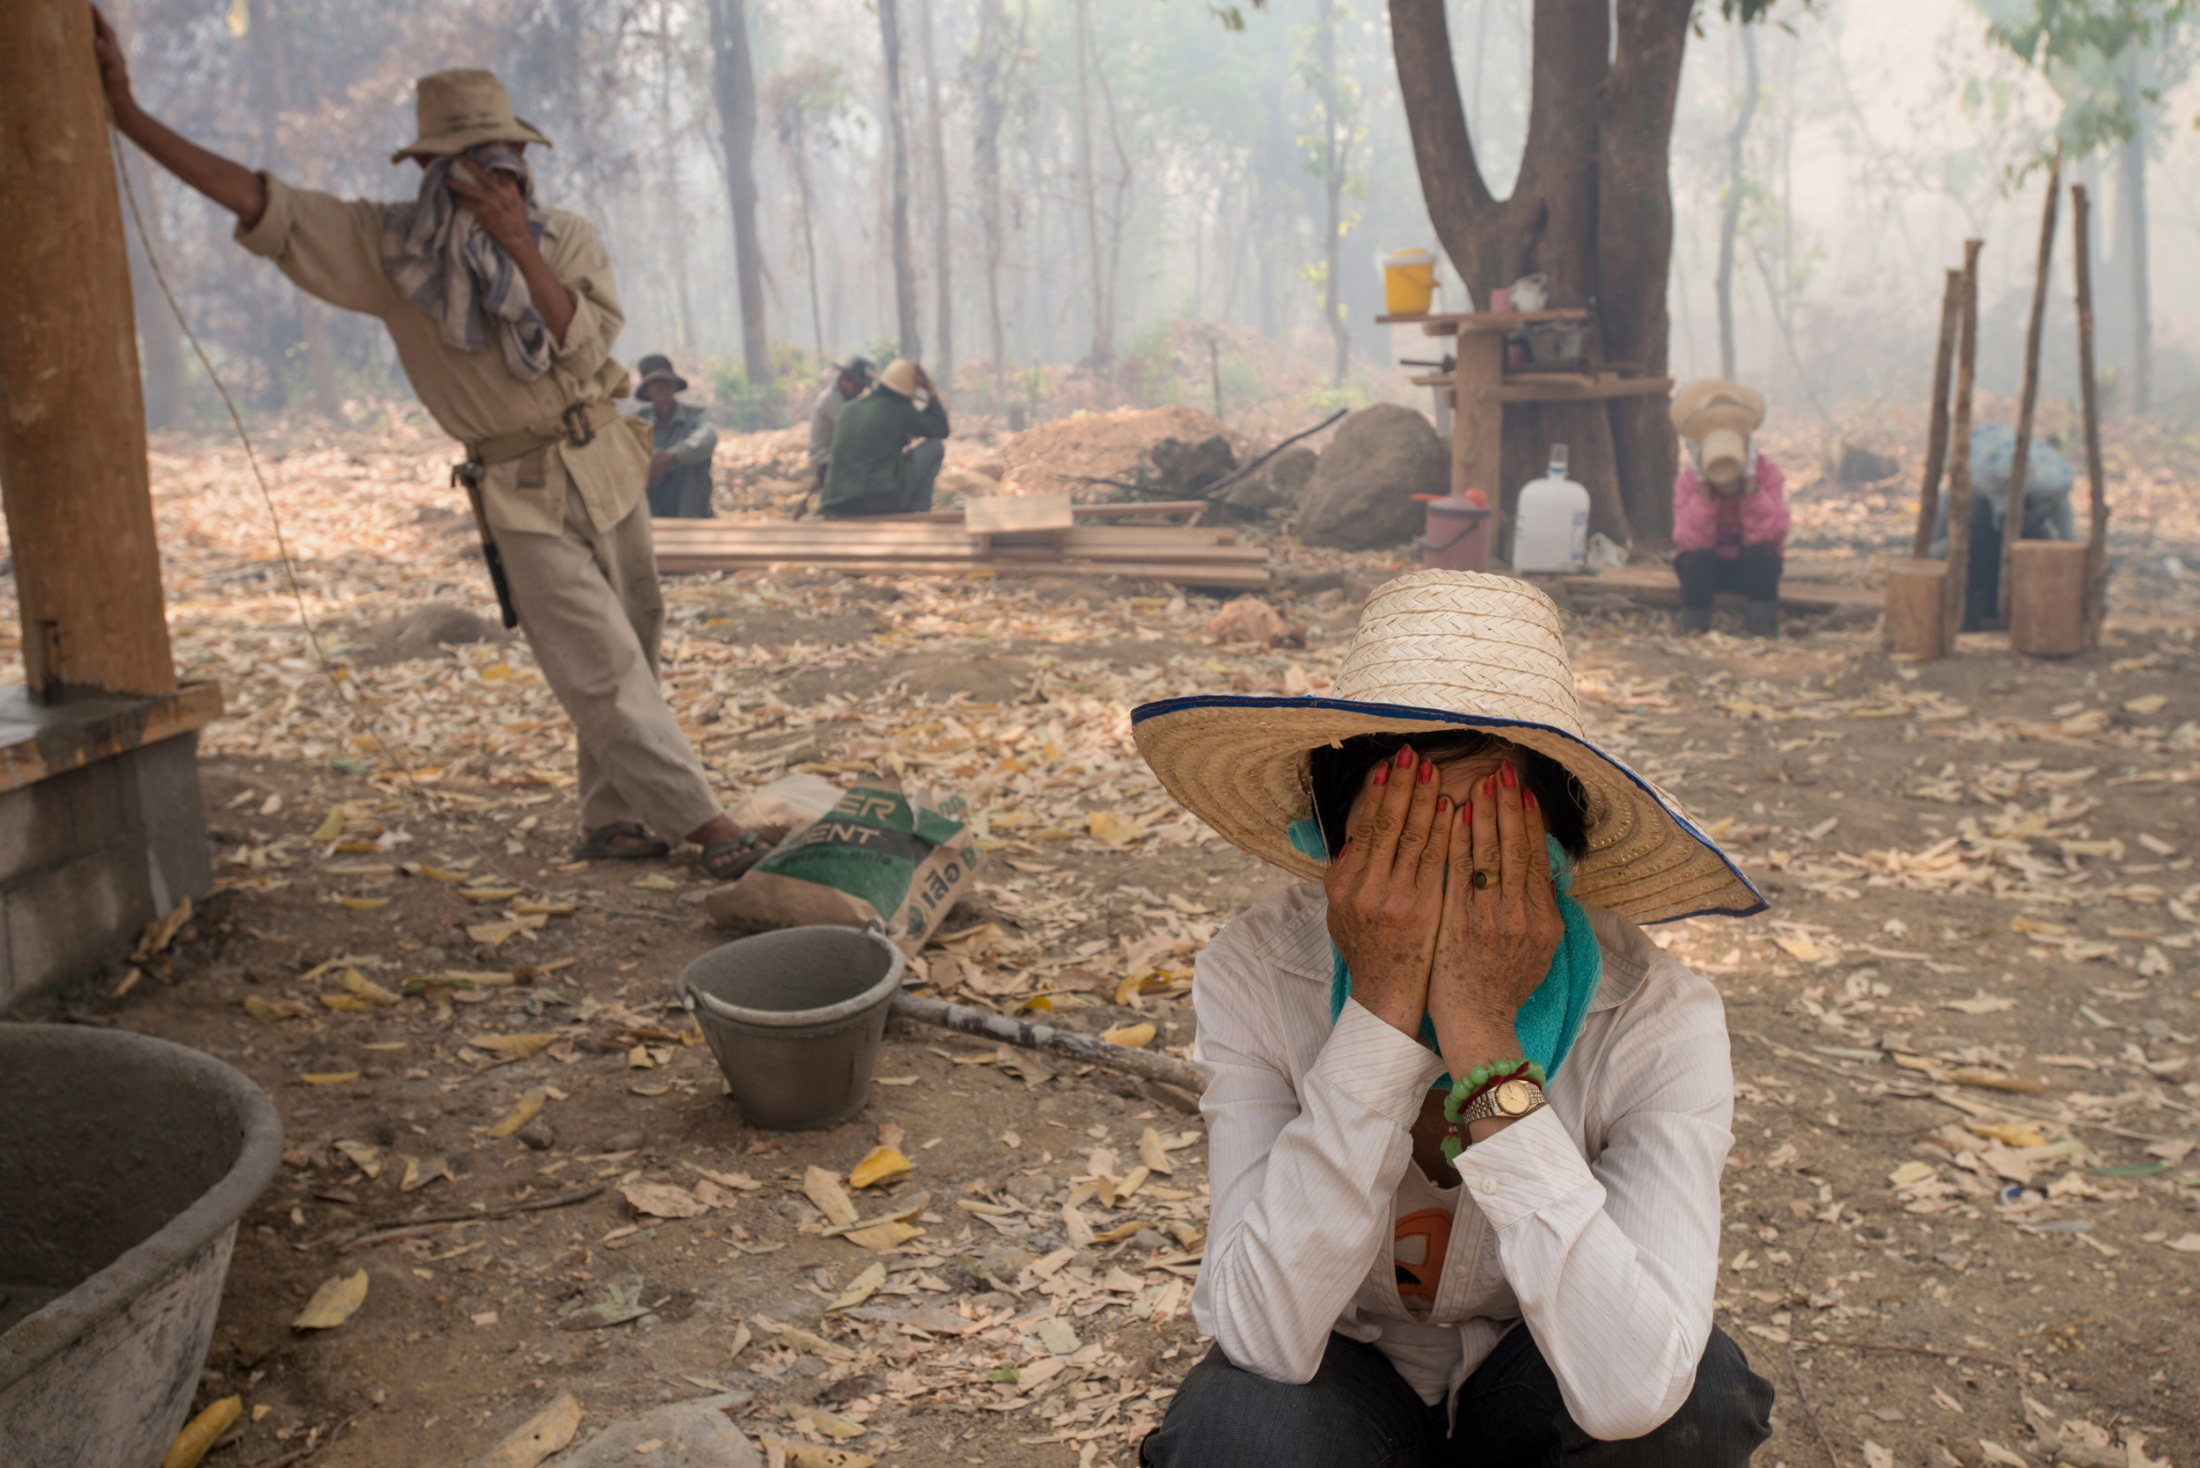 Wildfire occurs during the daytime in a place outside of the city. Widely effects the nearby areas where labors working are covered in haze. March 22, 2014.